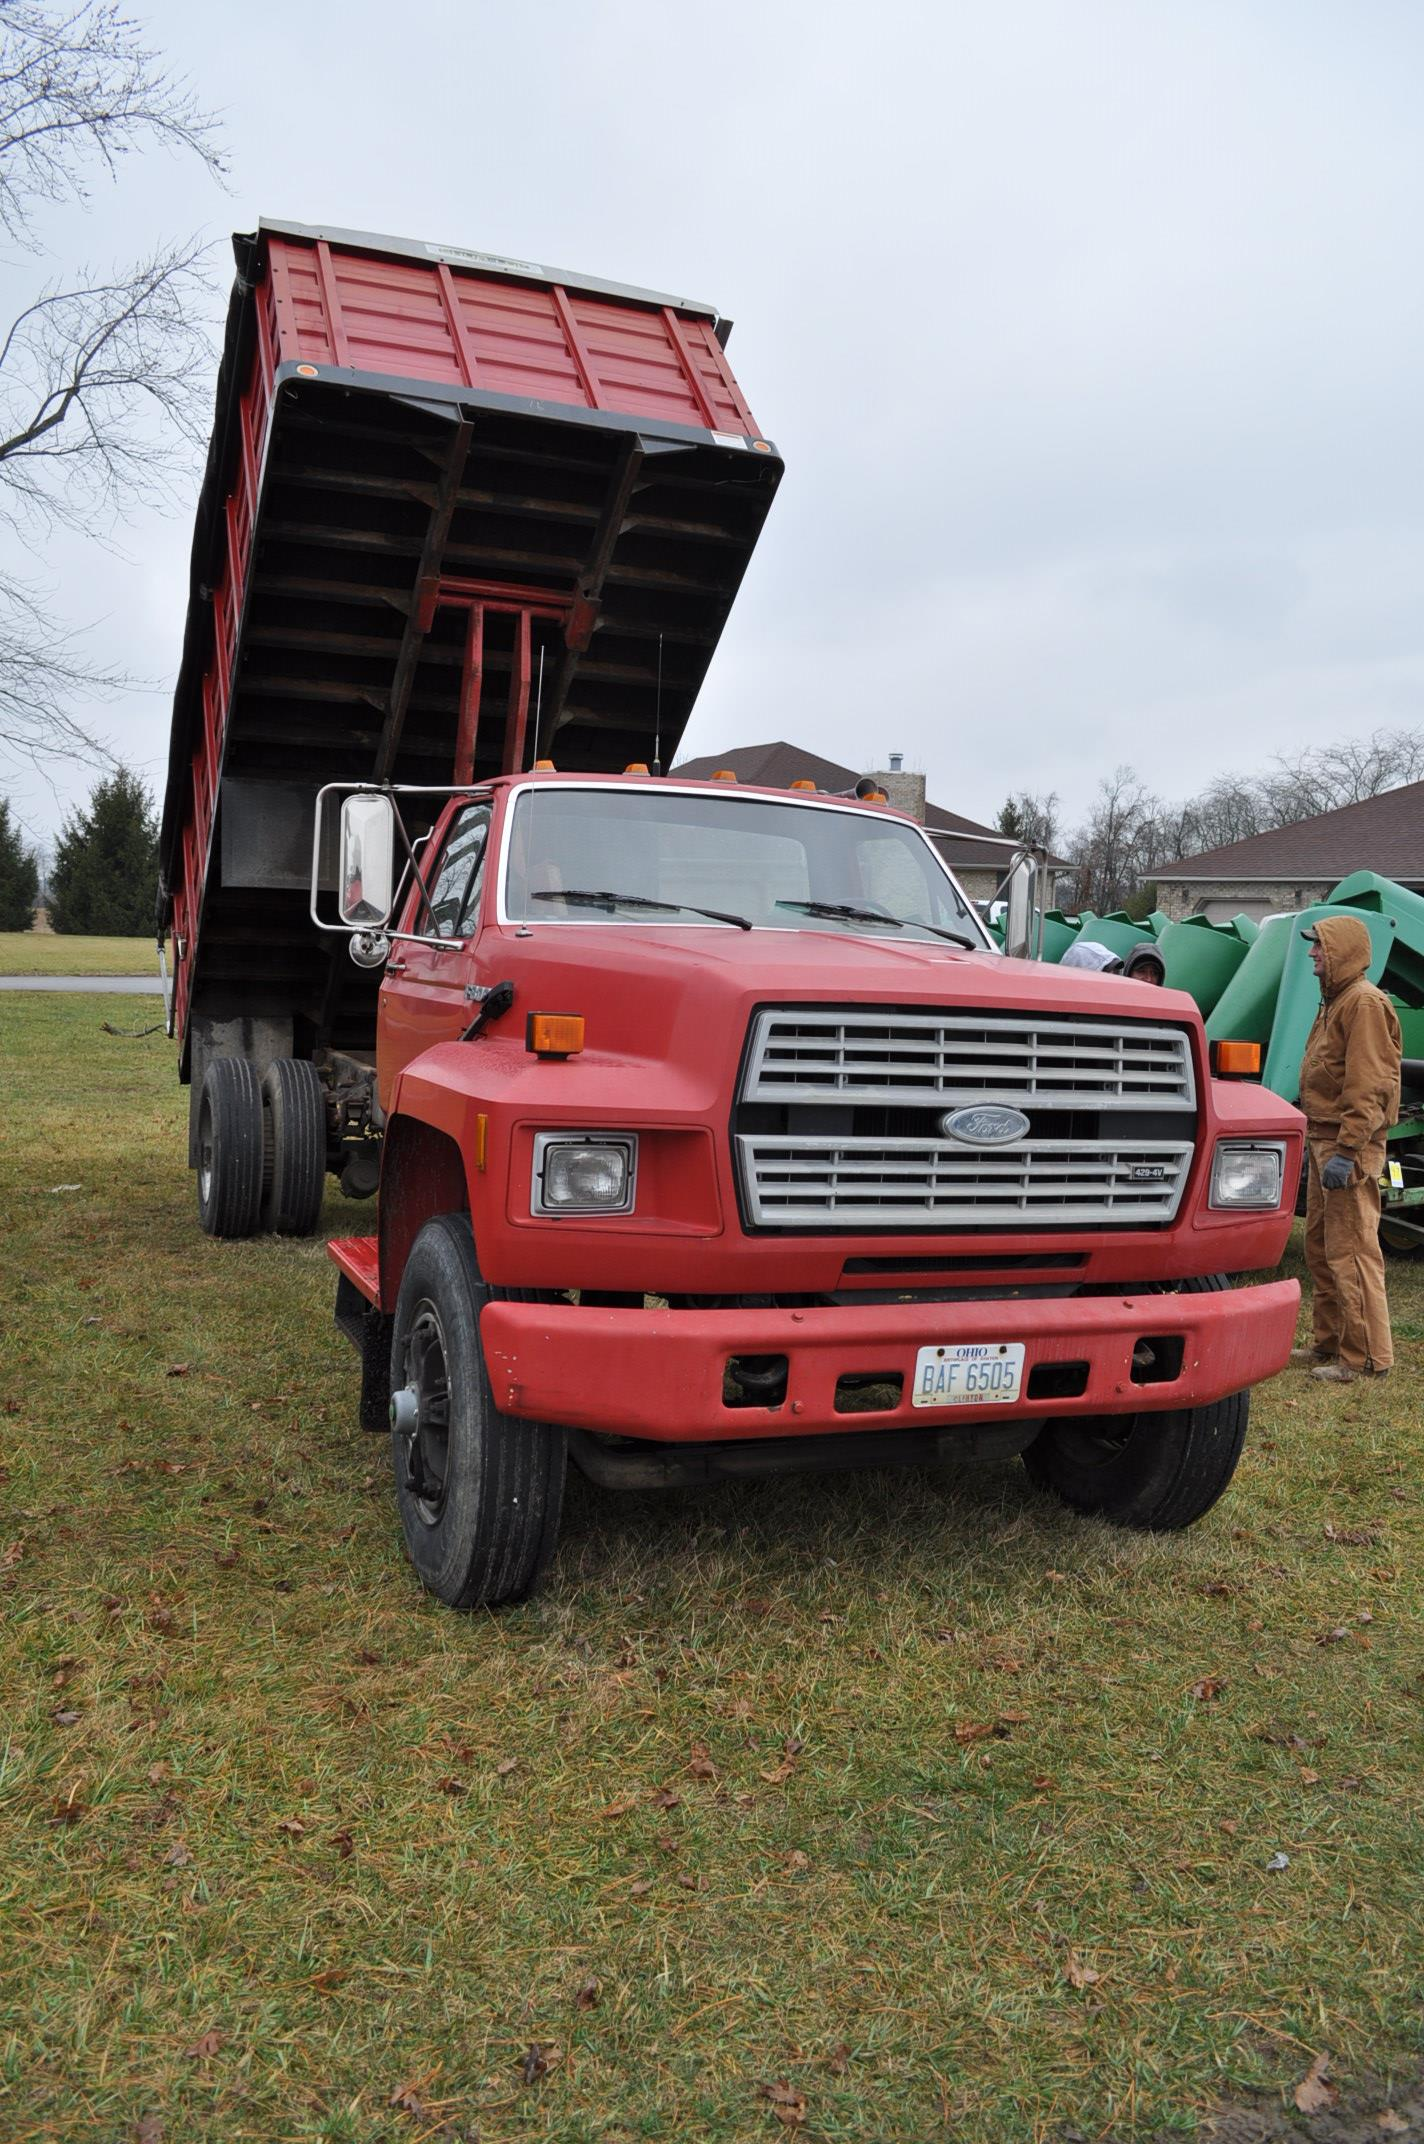 1988 Ford F800 grain truck, single axle, 427 V-8, auto, 11 R 22.5 tires, 16' Omaha Standard bed, - Image 4 of 17